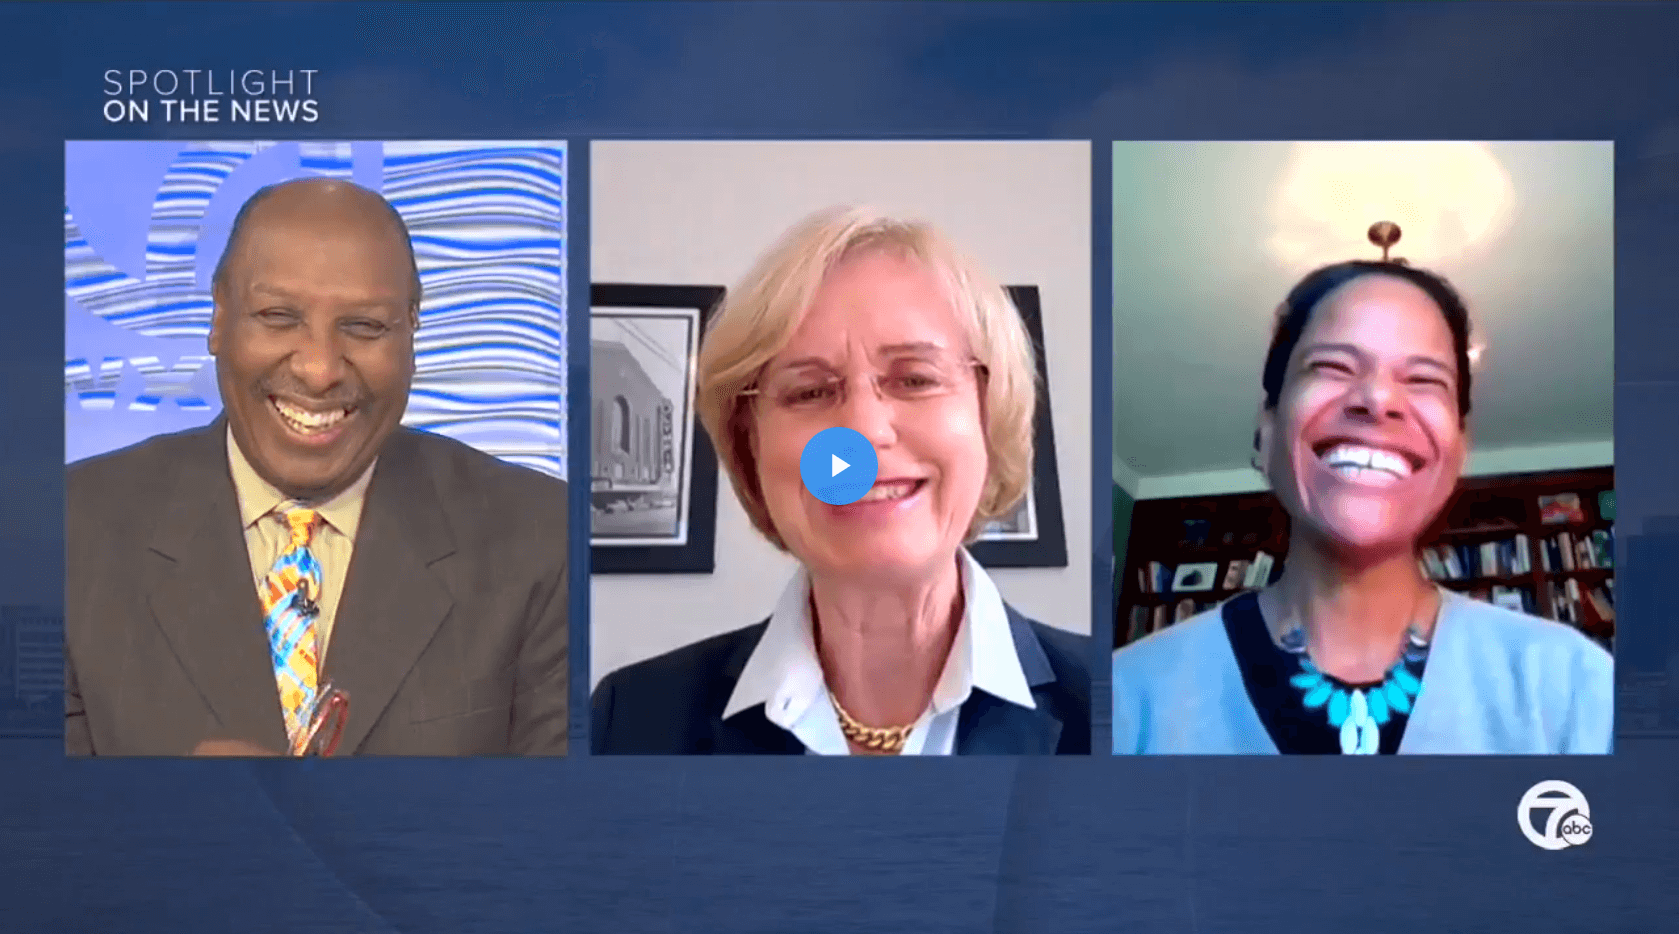 Mariam Noland, Chuck Stokes, and Melanca Clark speak virtually